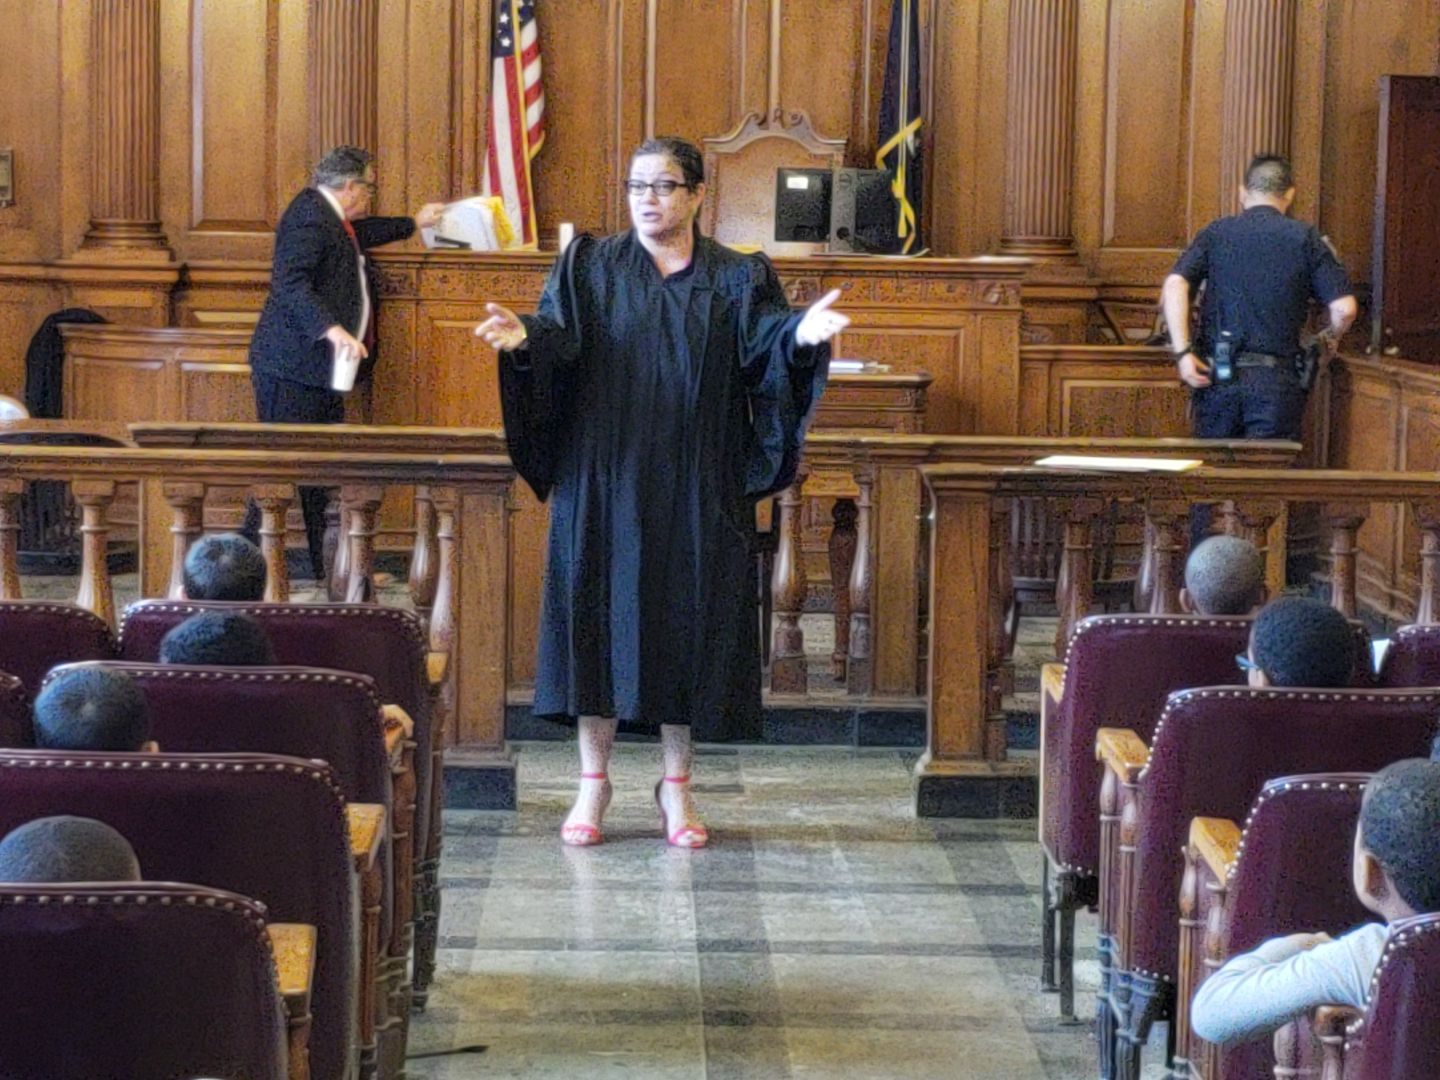 Court Visit - Judge Llinet Rosado of the Bronx County Supreme Court - Civil Term hosted 90 first graders from the Boys Prep Bronx Elementary School.